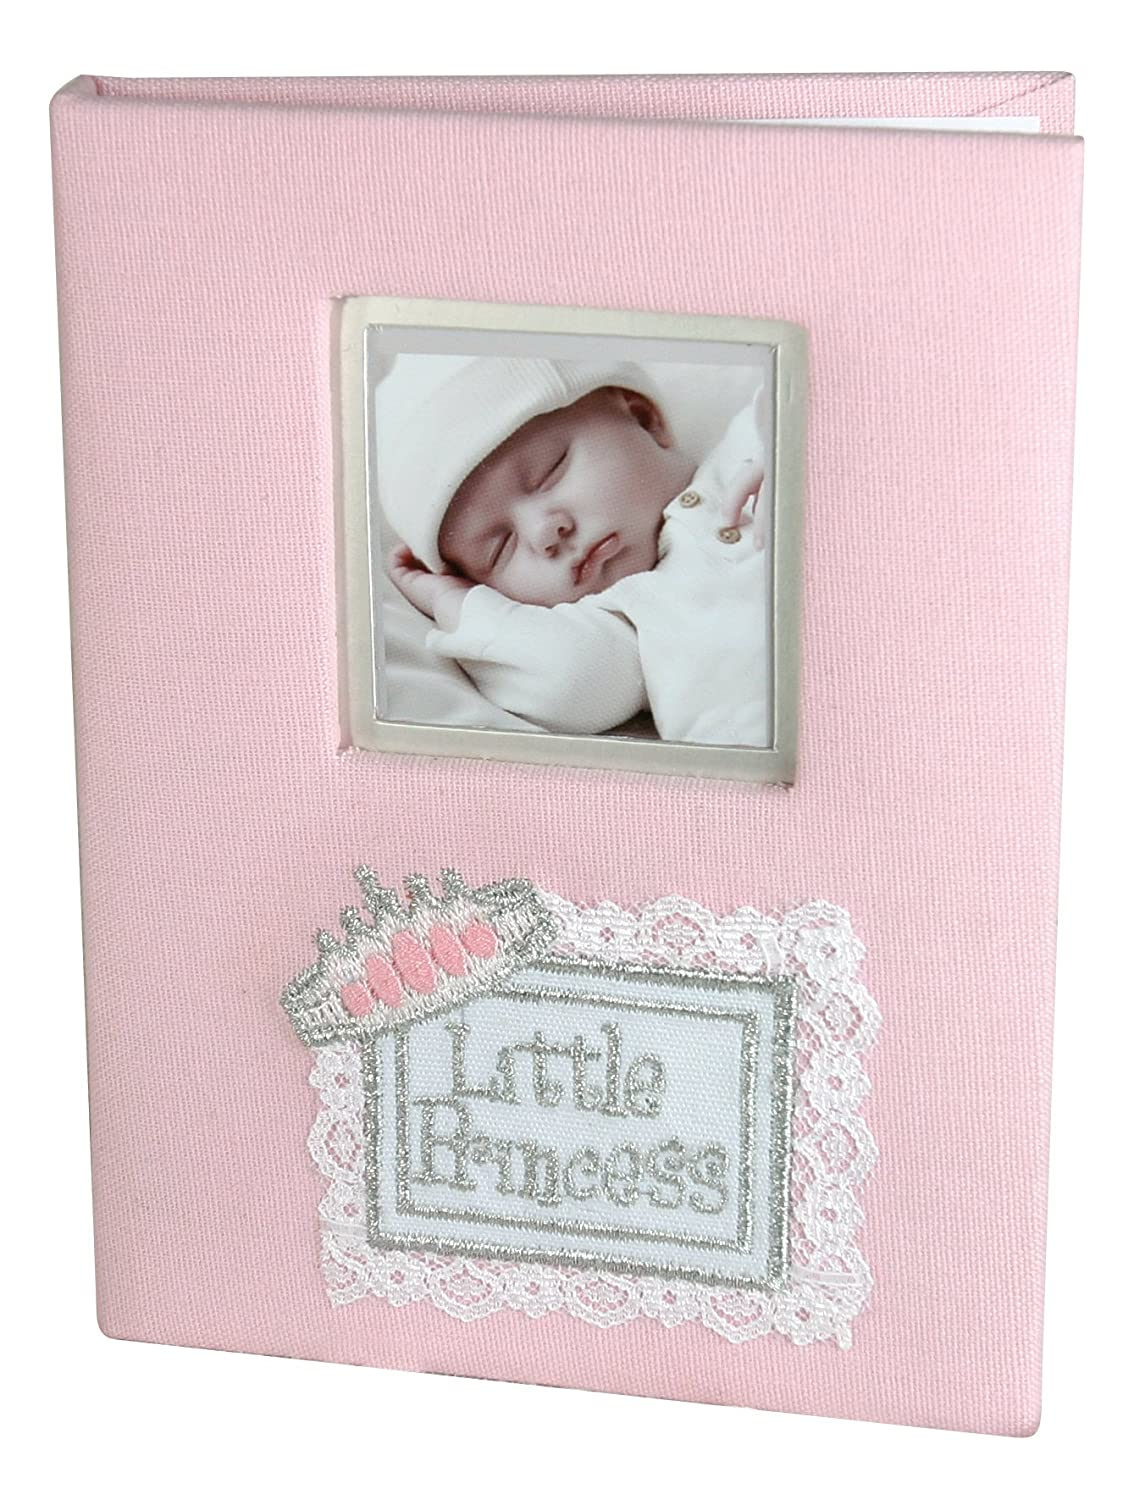 Stephan Baby Little Princess Keepsake Mini Photo Album Brag Book, Pink 342013